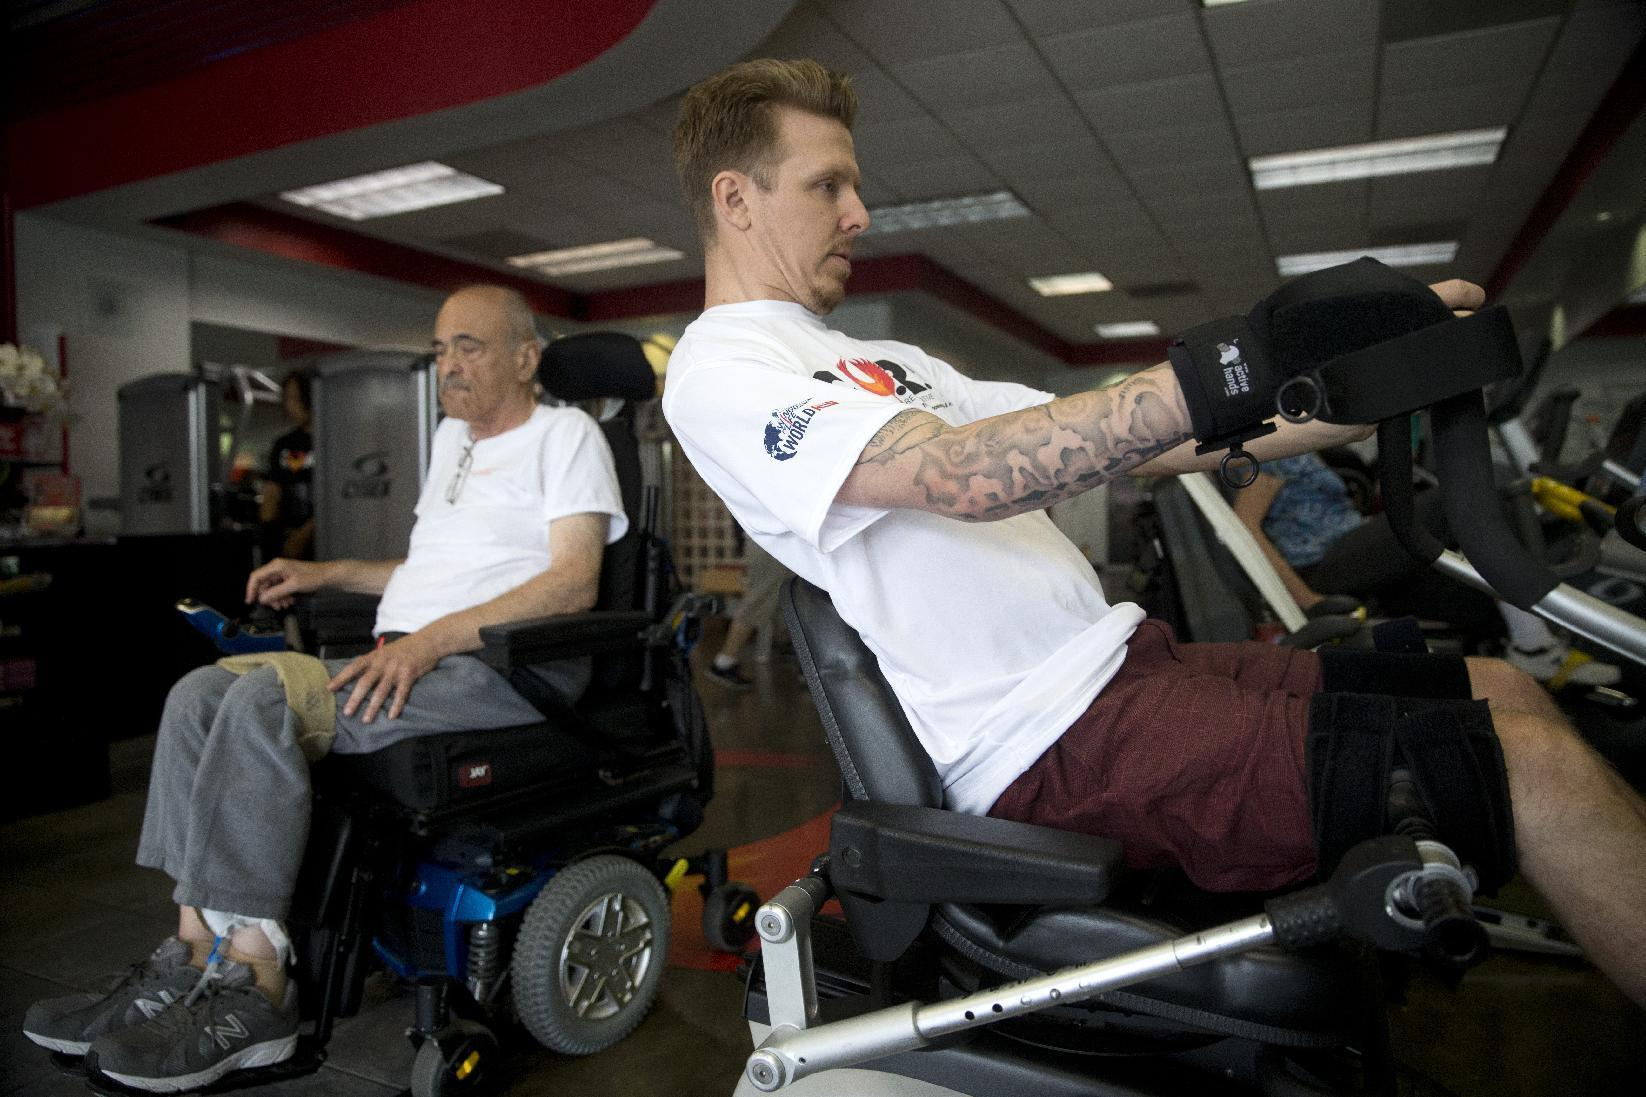 Former quadriplegic runs, walks to show others they can